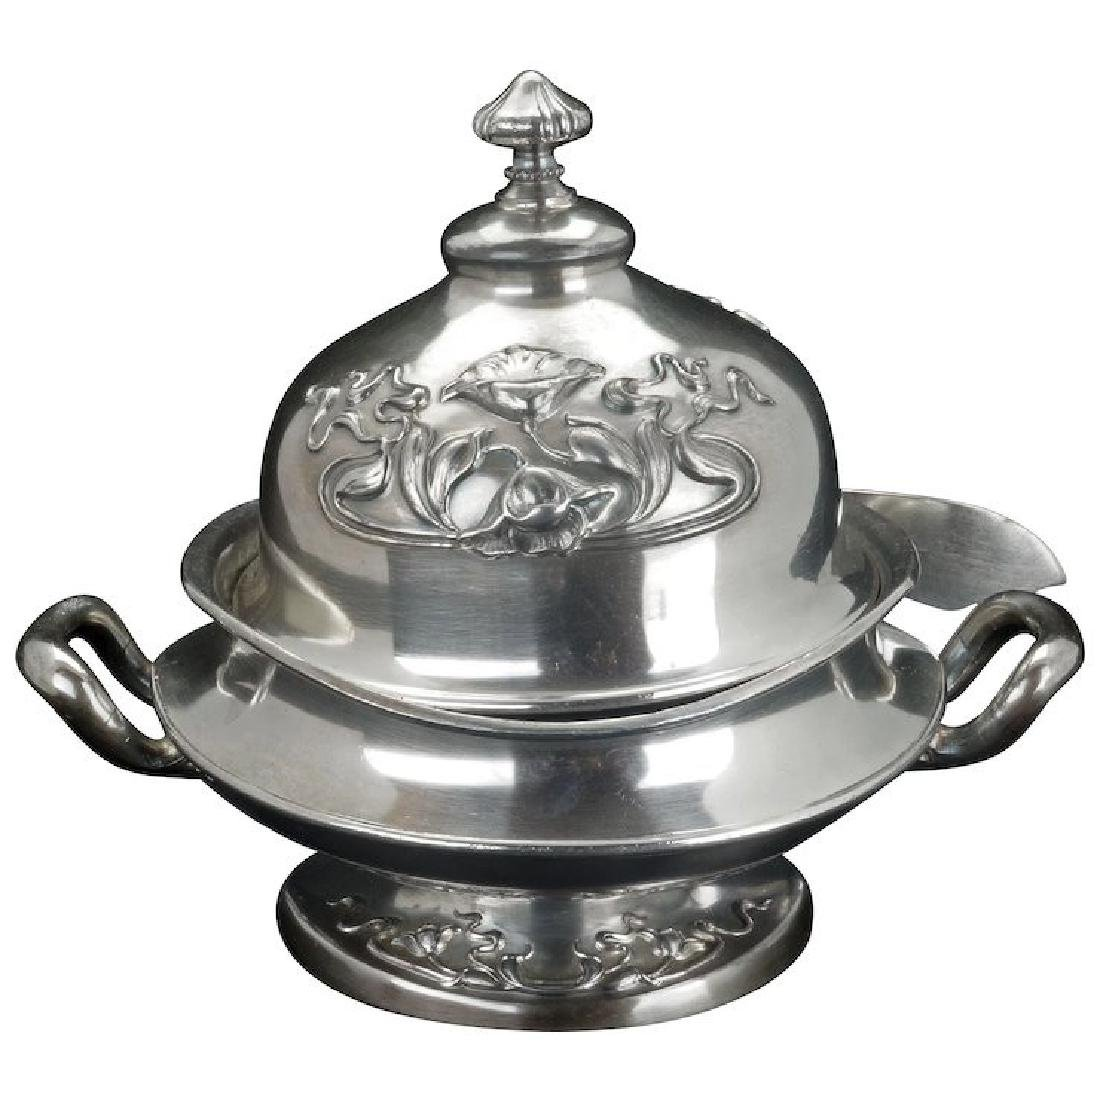 Art Nouveau silver plate butter dish by Forbes Silver